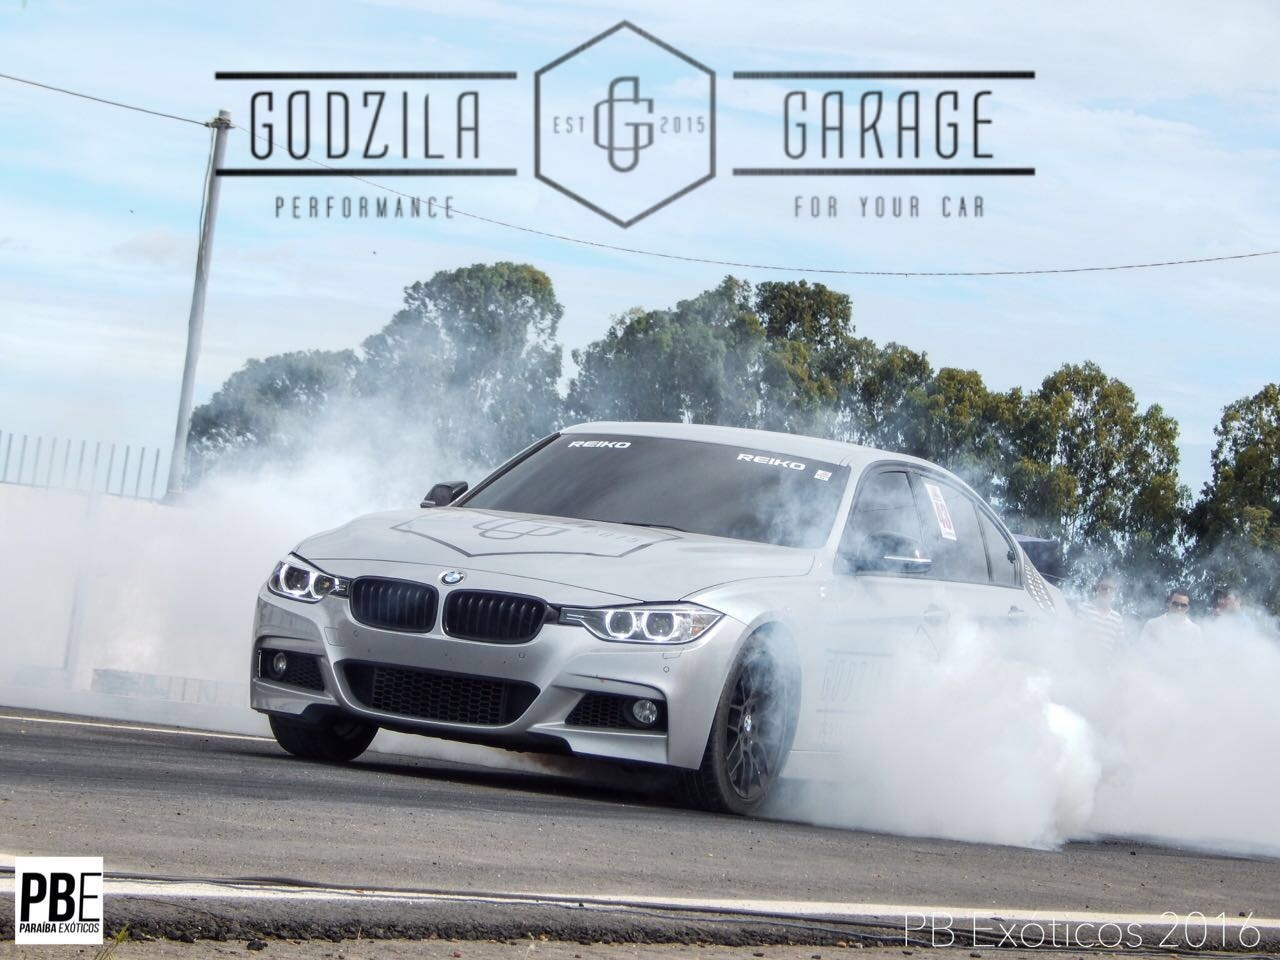 2014 silver bmw 320i gp pictures mods upgrades wallpaper BMW 135I Wallpaper 2014 silver bmw 320i gp picture mods upgrades